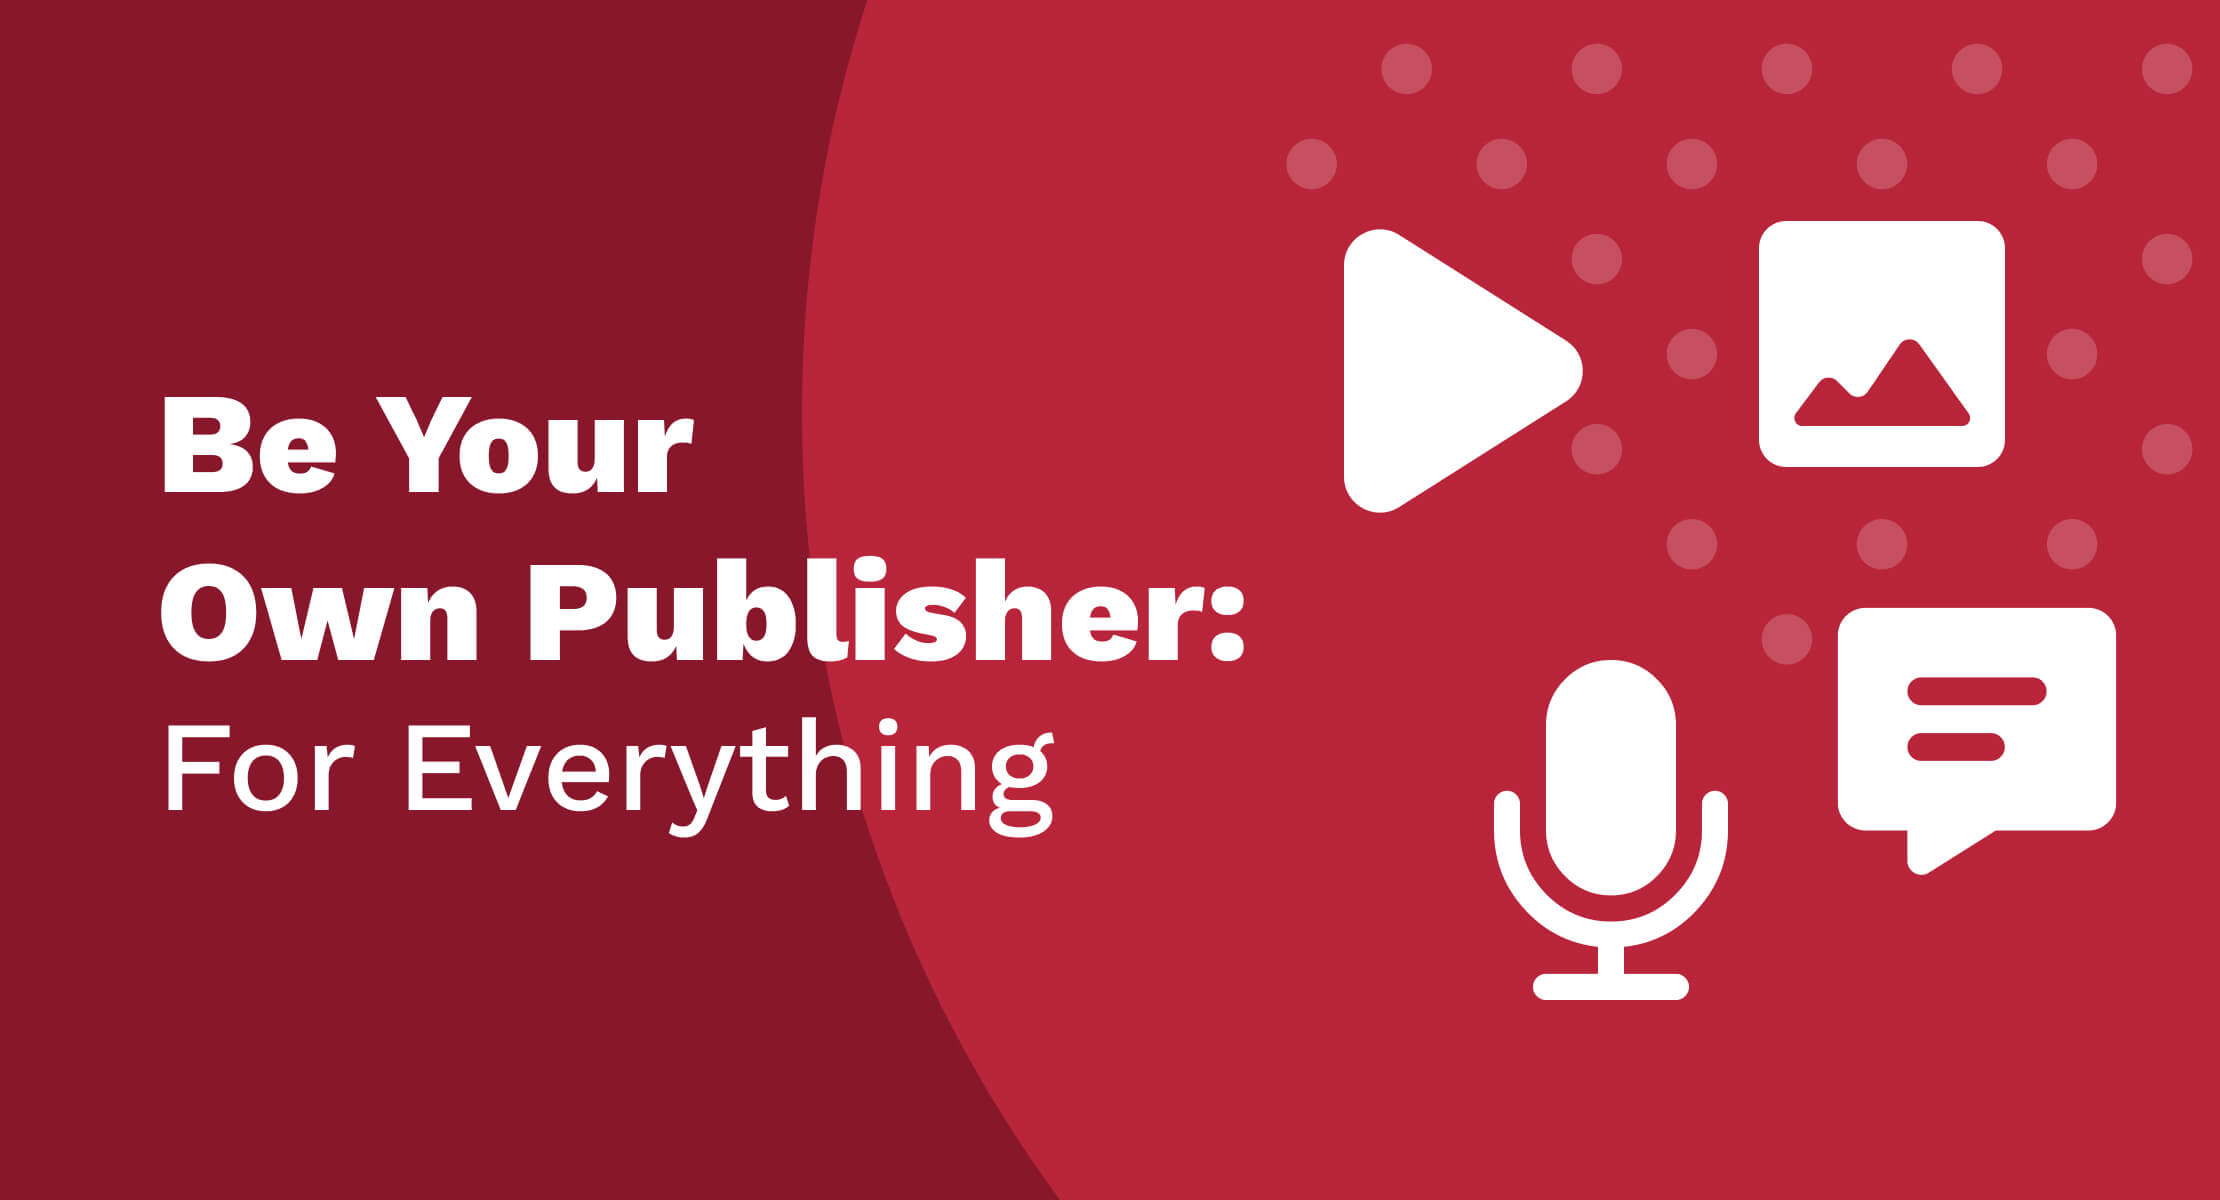 Be Your Own Publisher: For Everything